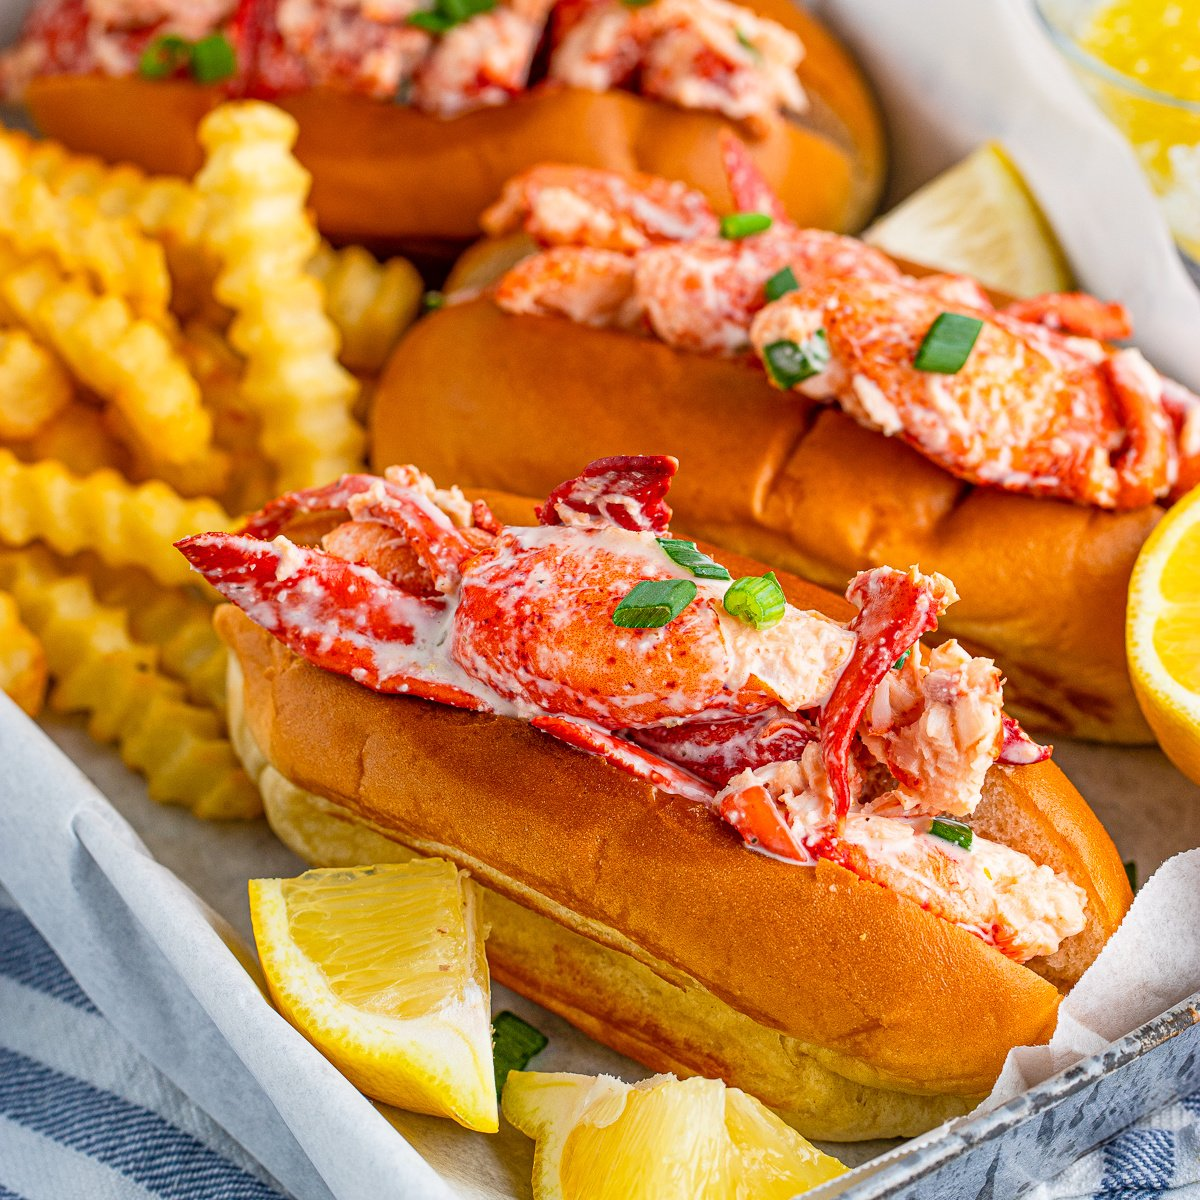 Square image of Lobster Rolls ion tray with French fries and lemon wedges